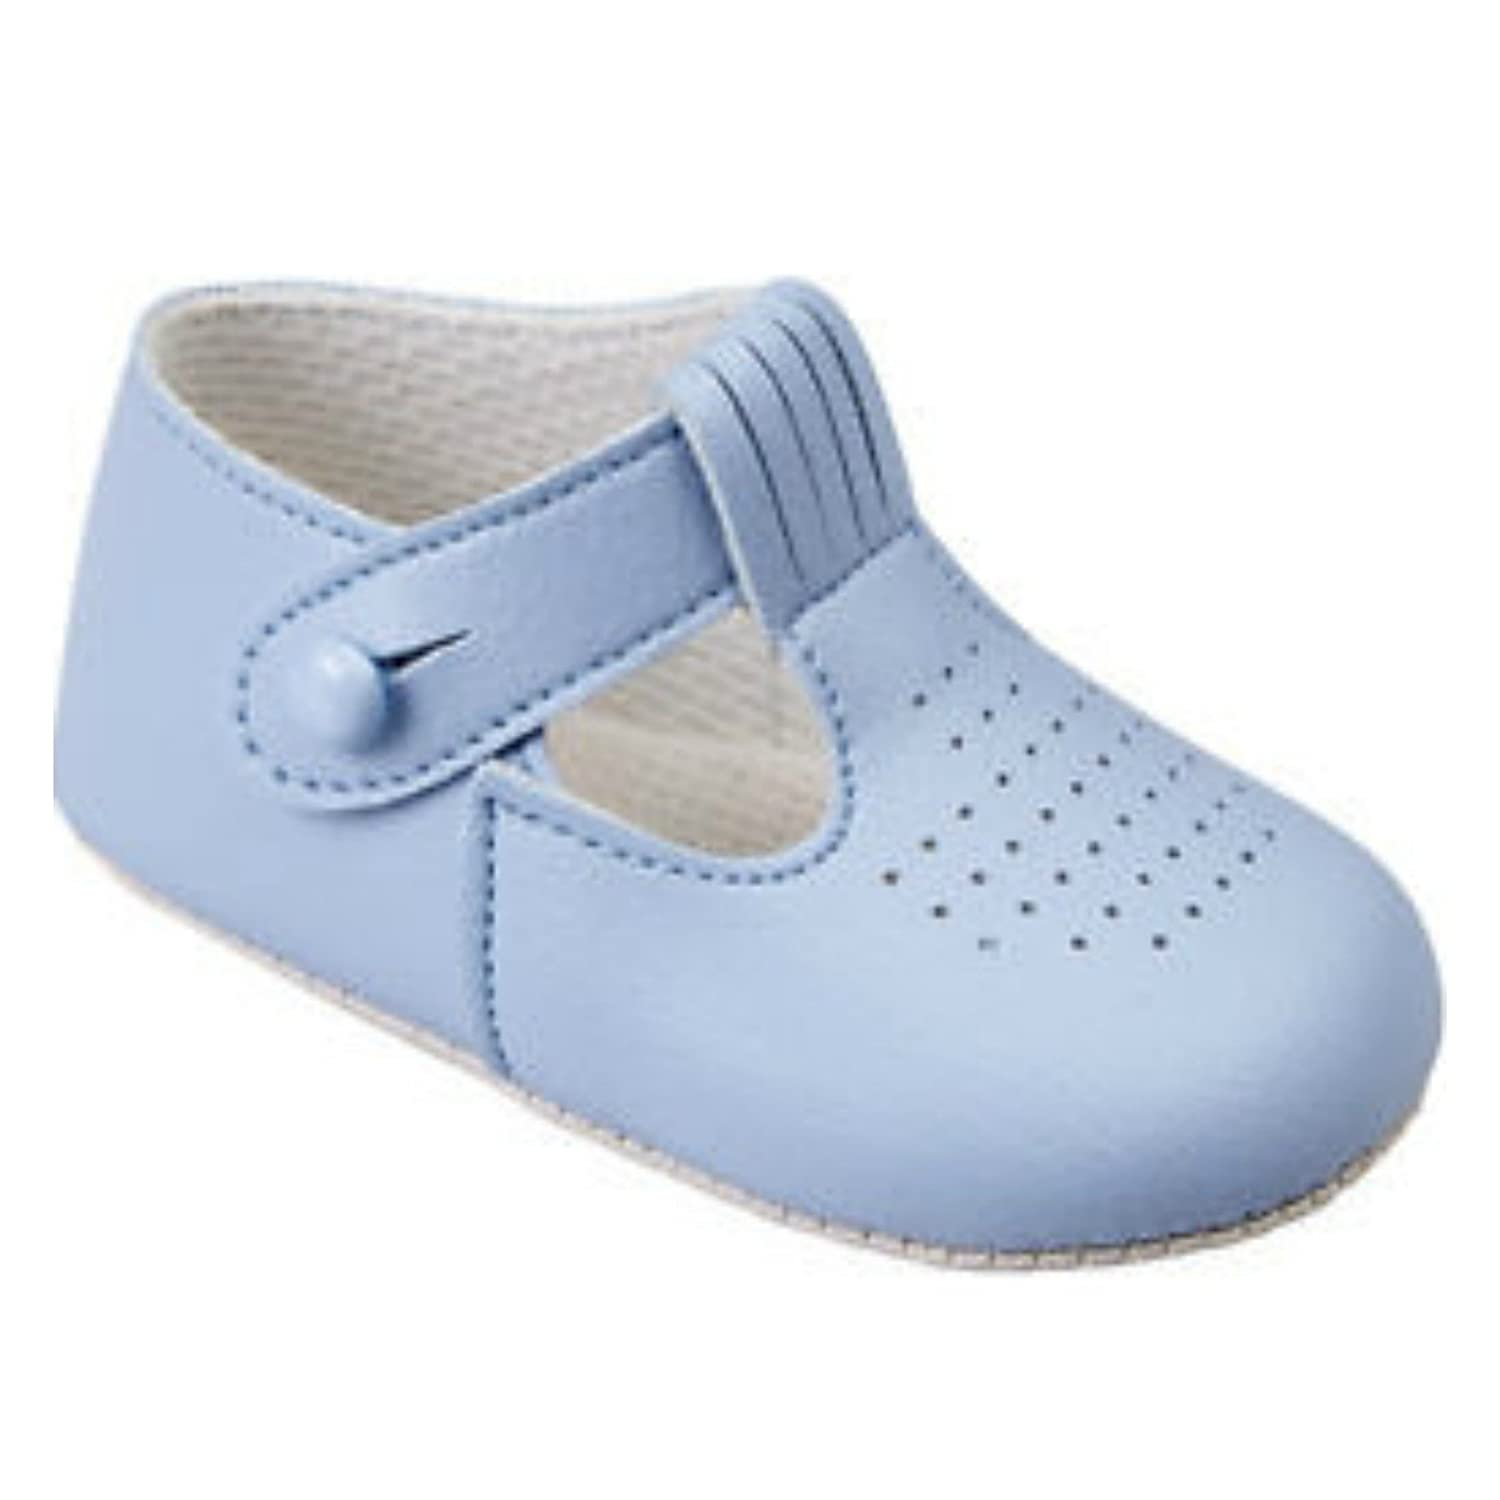 Baby Boys T Bar Pram Shoes with hole cut pattern Made in England